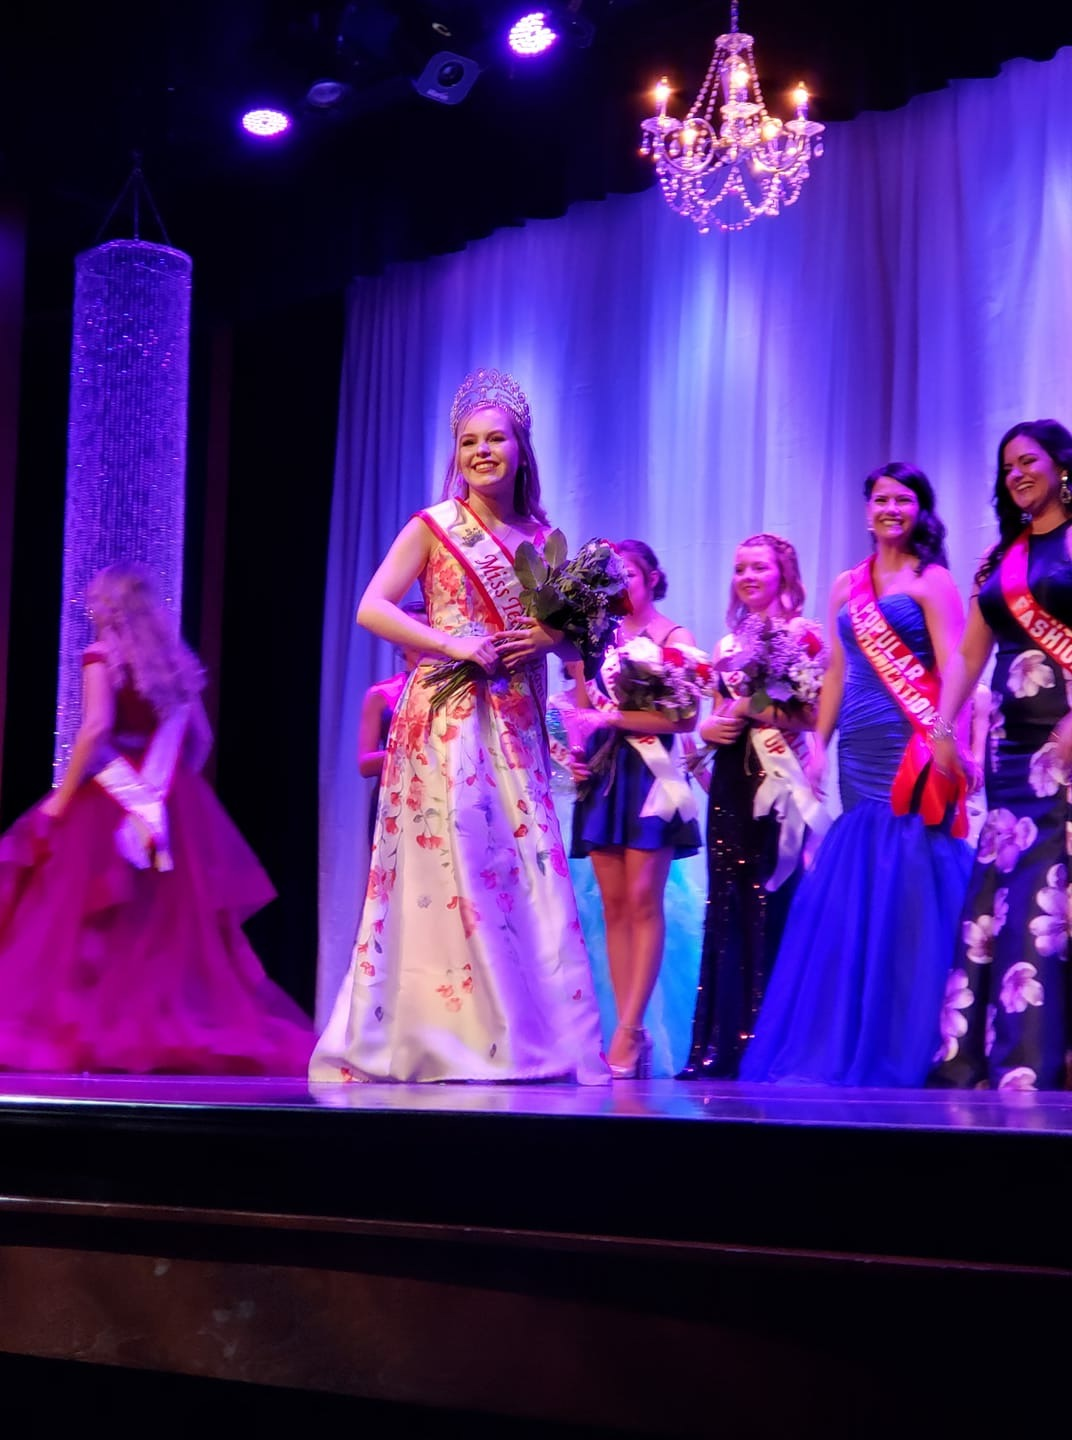 A sponsorship between YLGG helps Mattigan accomplish her personal goal to support and highlight other women's accomplishments. She will be attending Miss Teen Canada in February and YLGG will have more of a reach into the eastern provinces. -